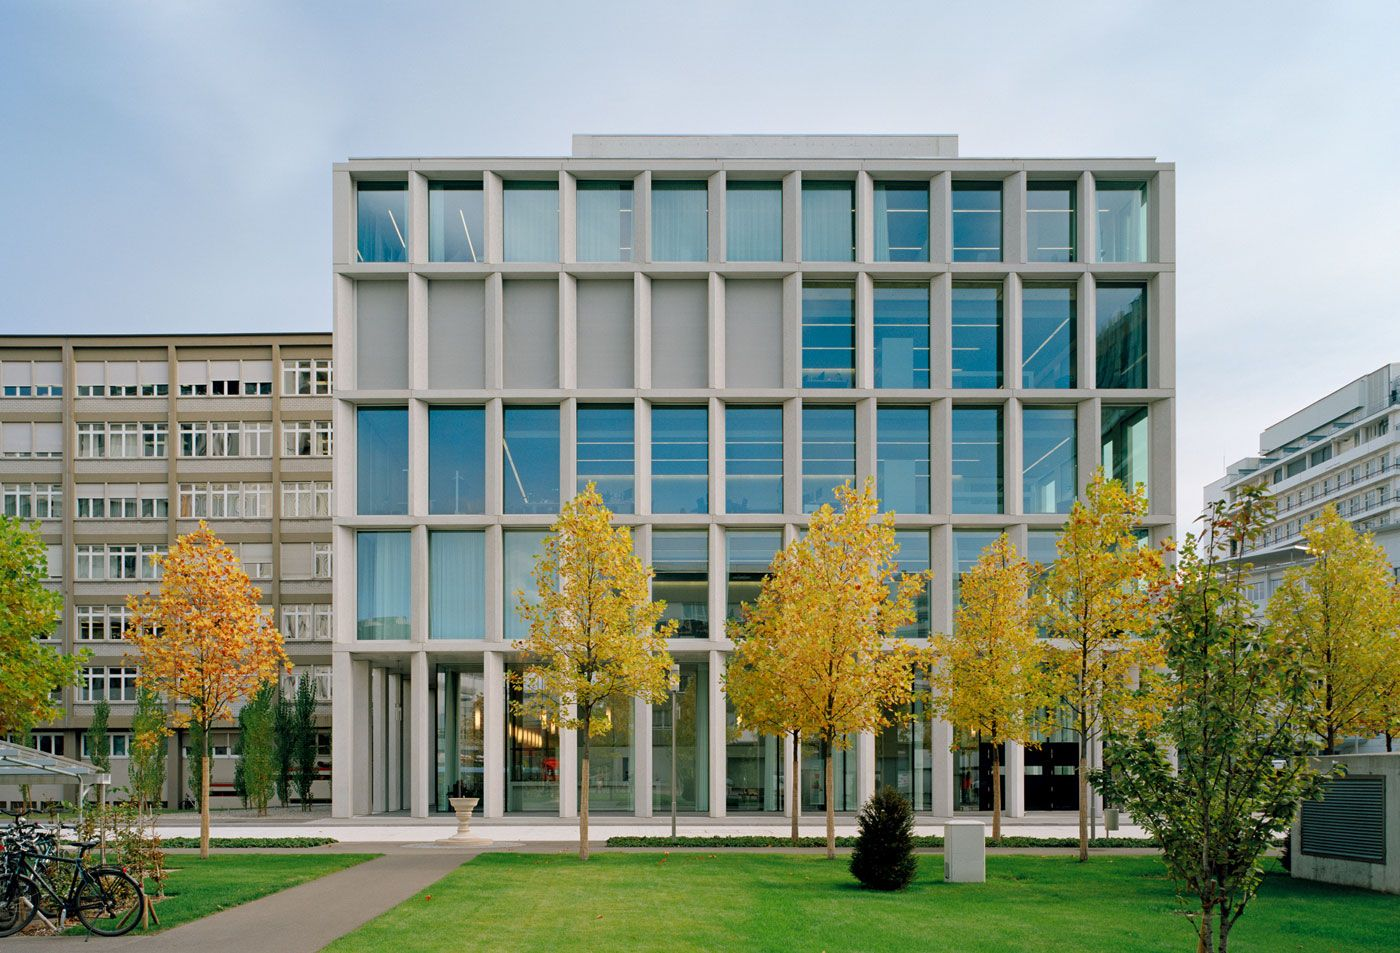 David chipperfield a f a s i a page 10 for Lab architects